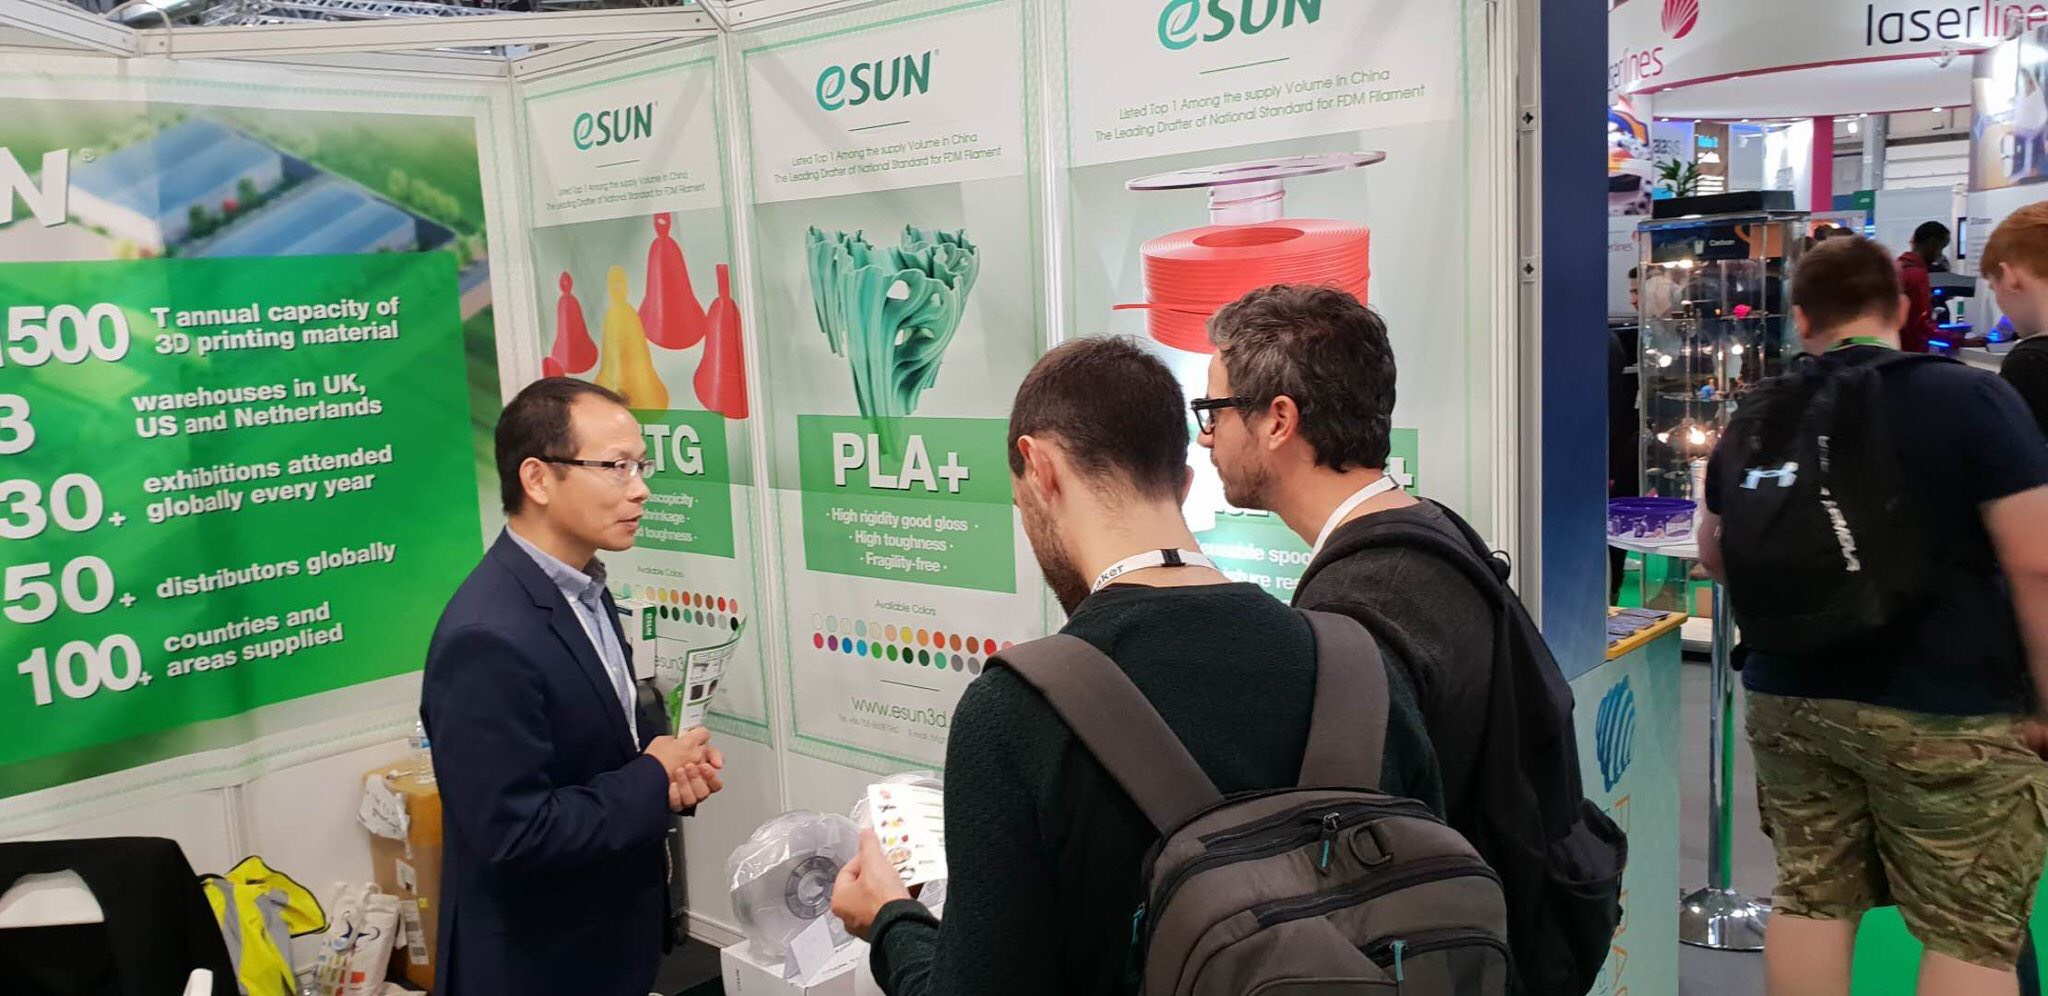 Kevin Yang talking to visitors at eSUN stand at TCT 2018 in the UK. Photo by eSUN.